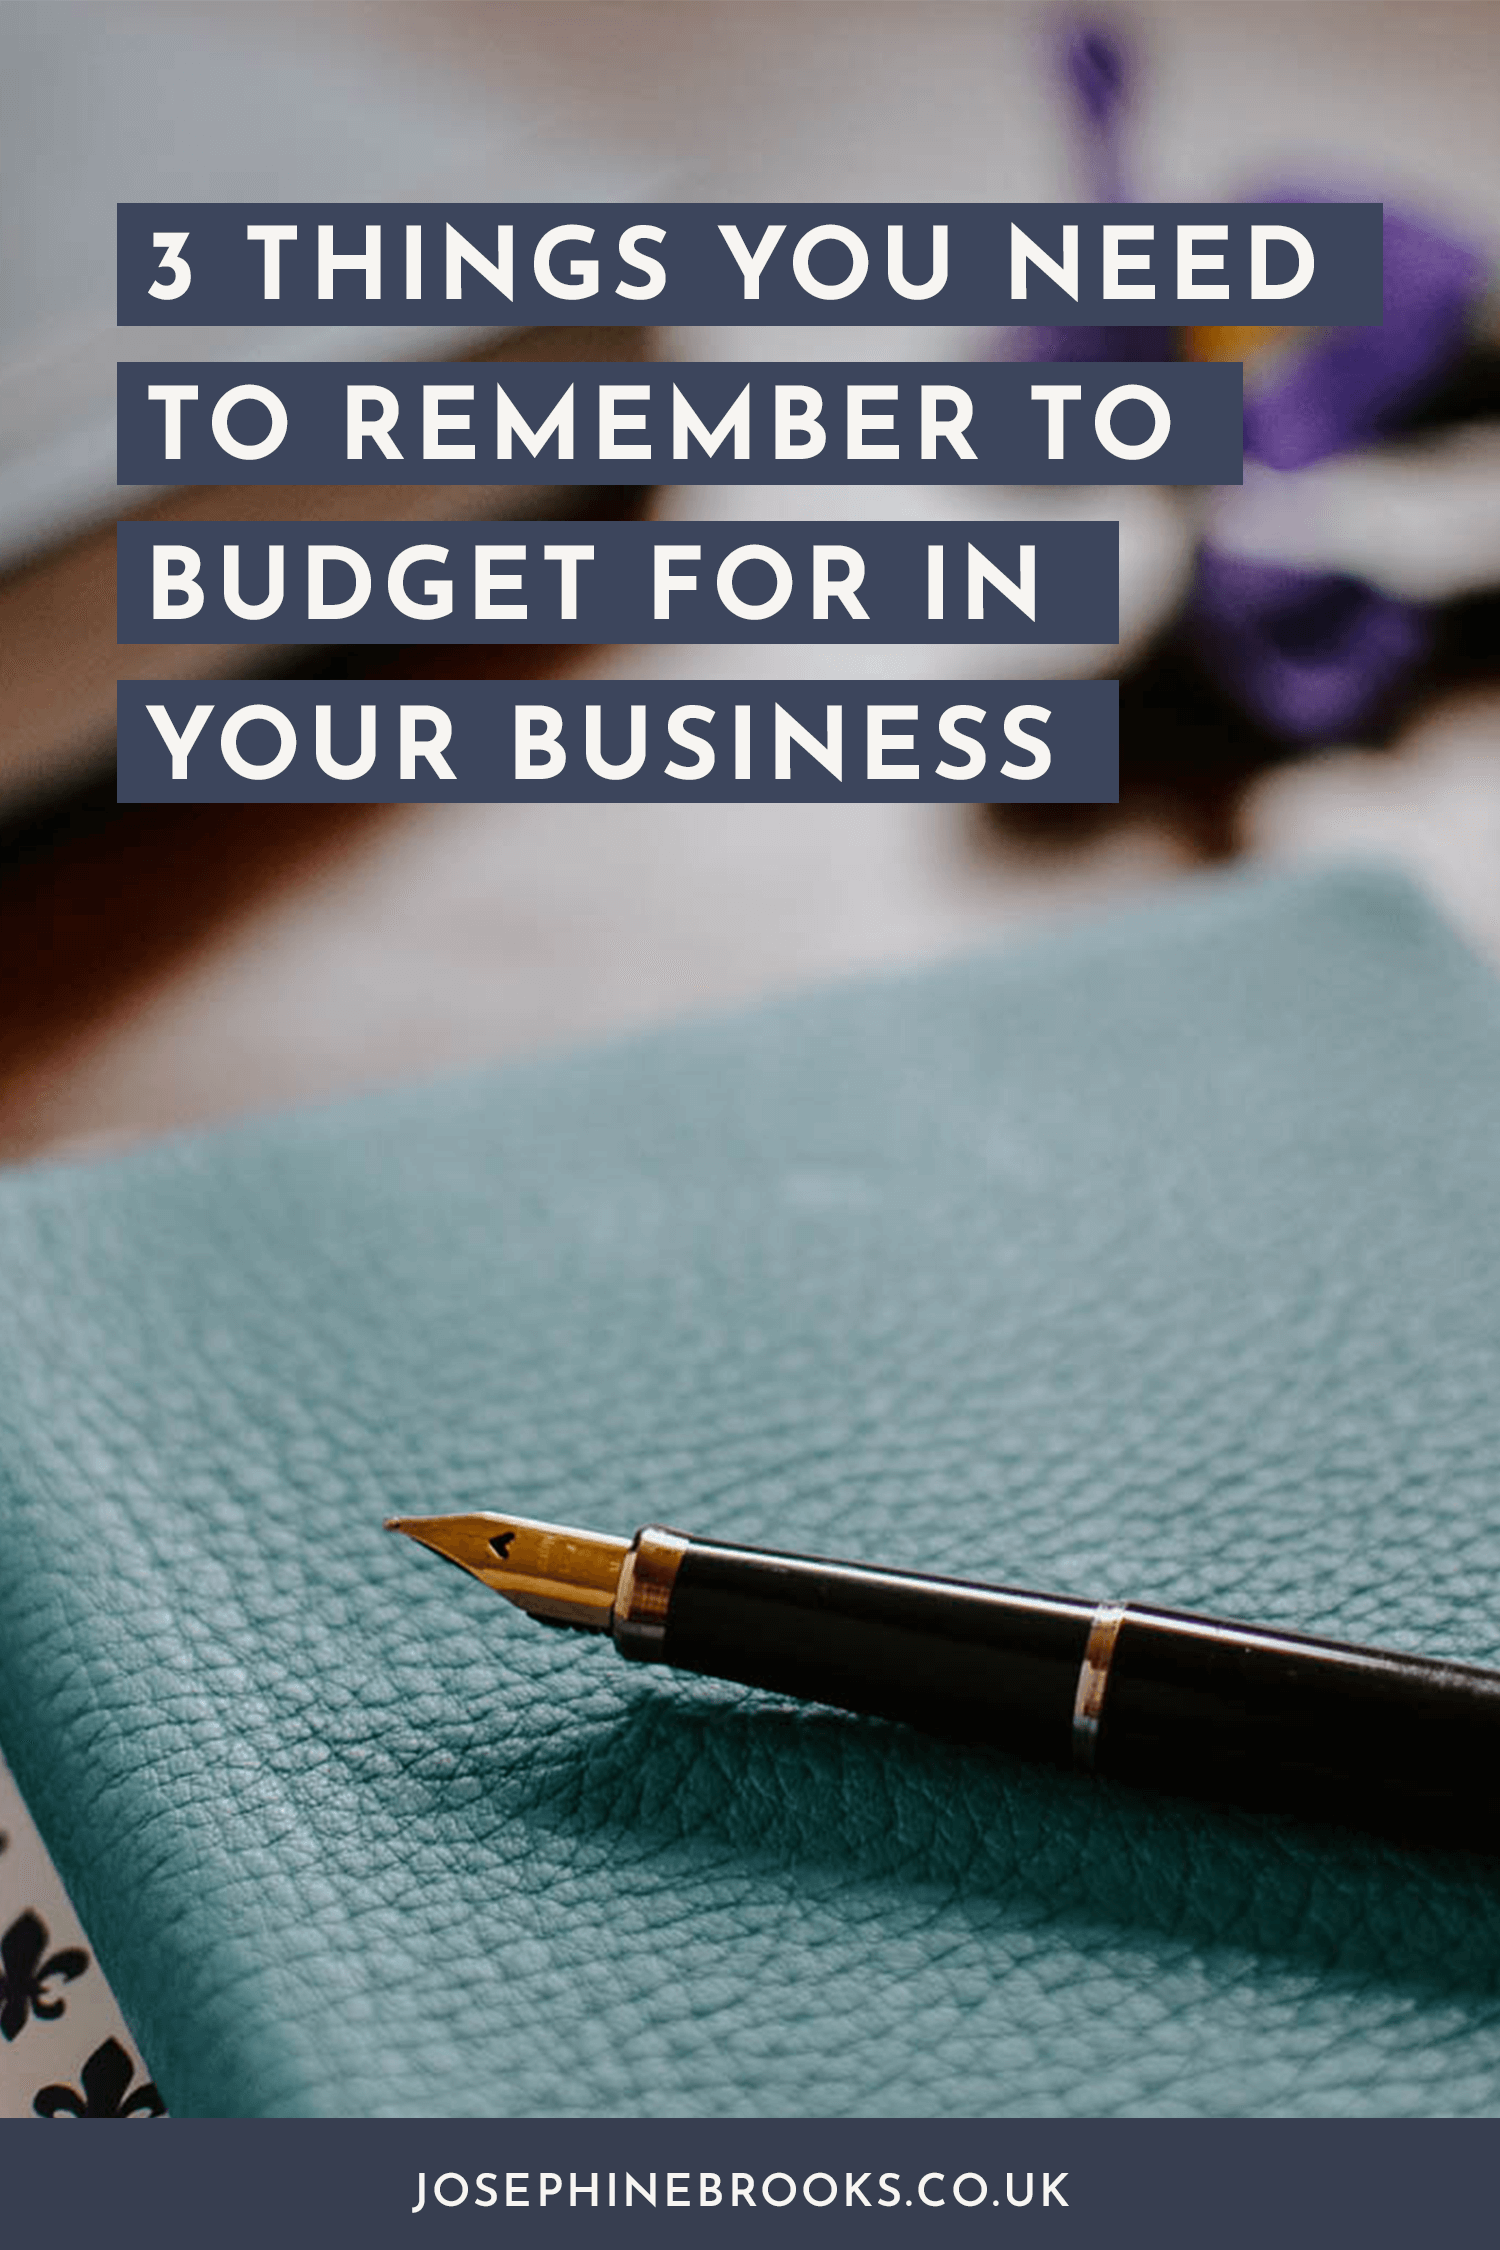 3 things you need to remember to budget for in your business, 3 things you need to budget for in your creative business (that are often forgotten), Creative business finance, Business budgeting, side-hustle business accounting | Josephine Brooks